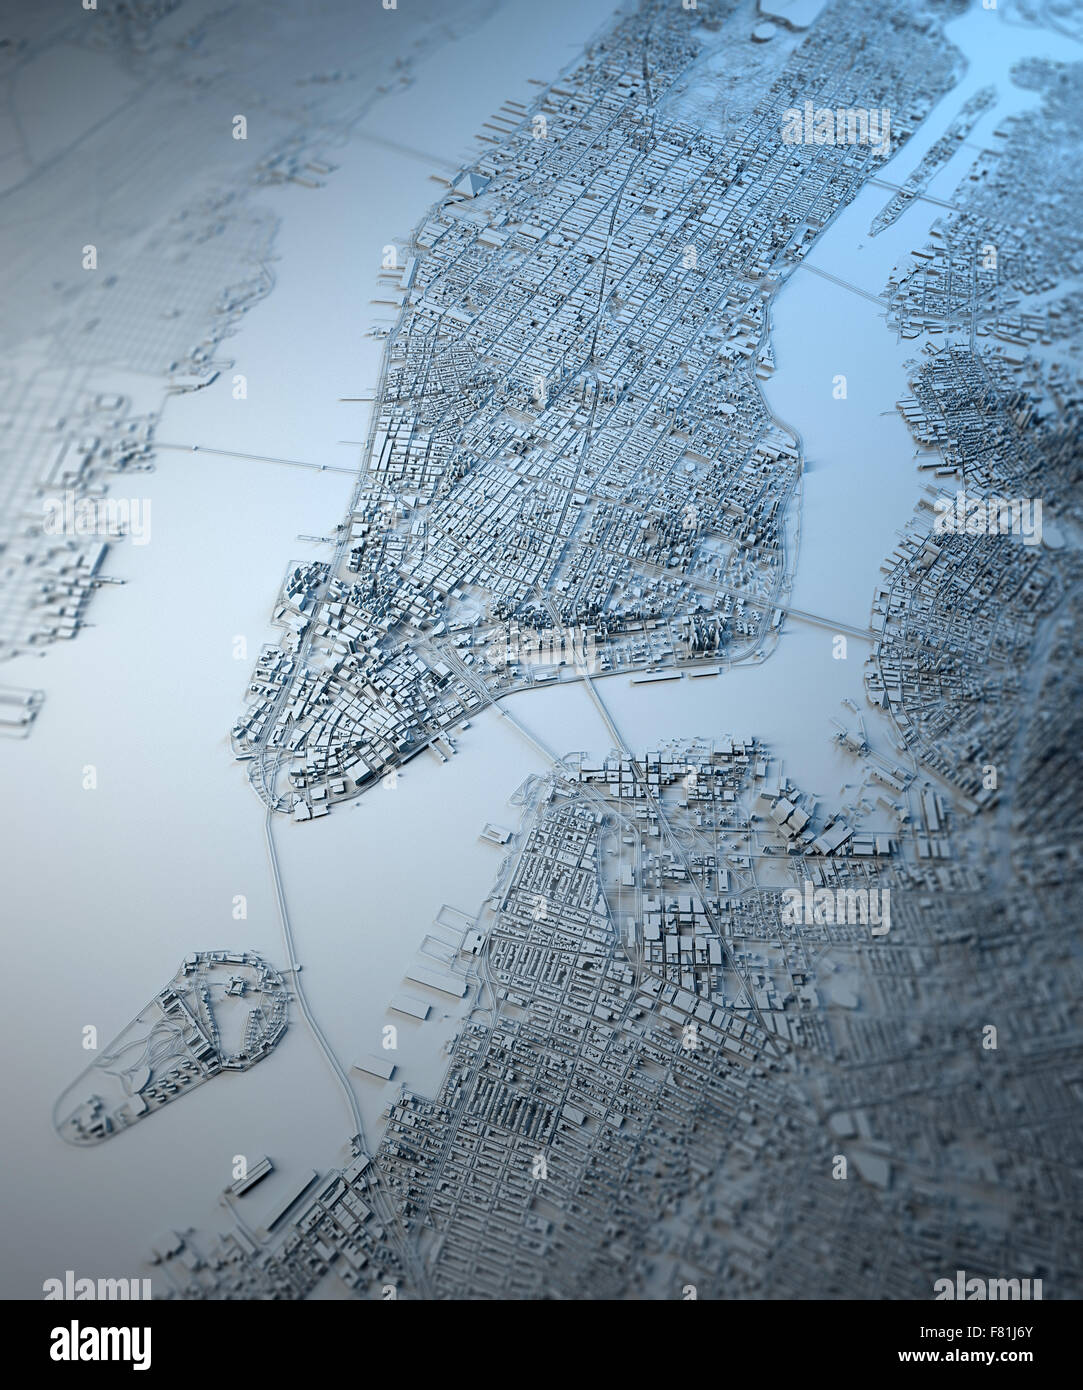 New York D Map On Background Manhattan Stock Photo Royalty Free - New york map in 3d